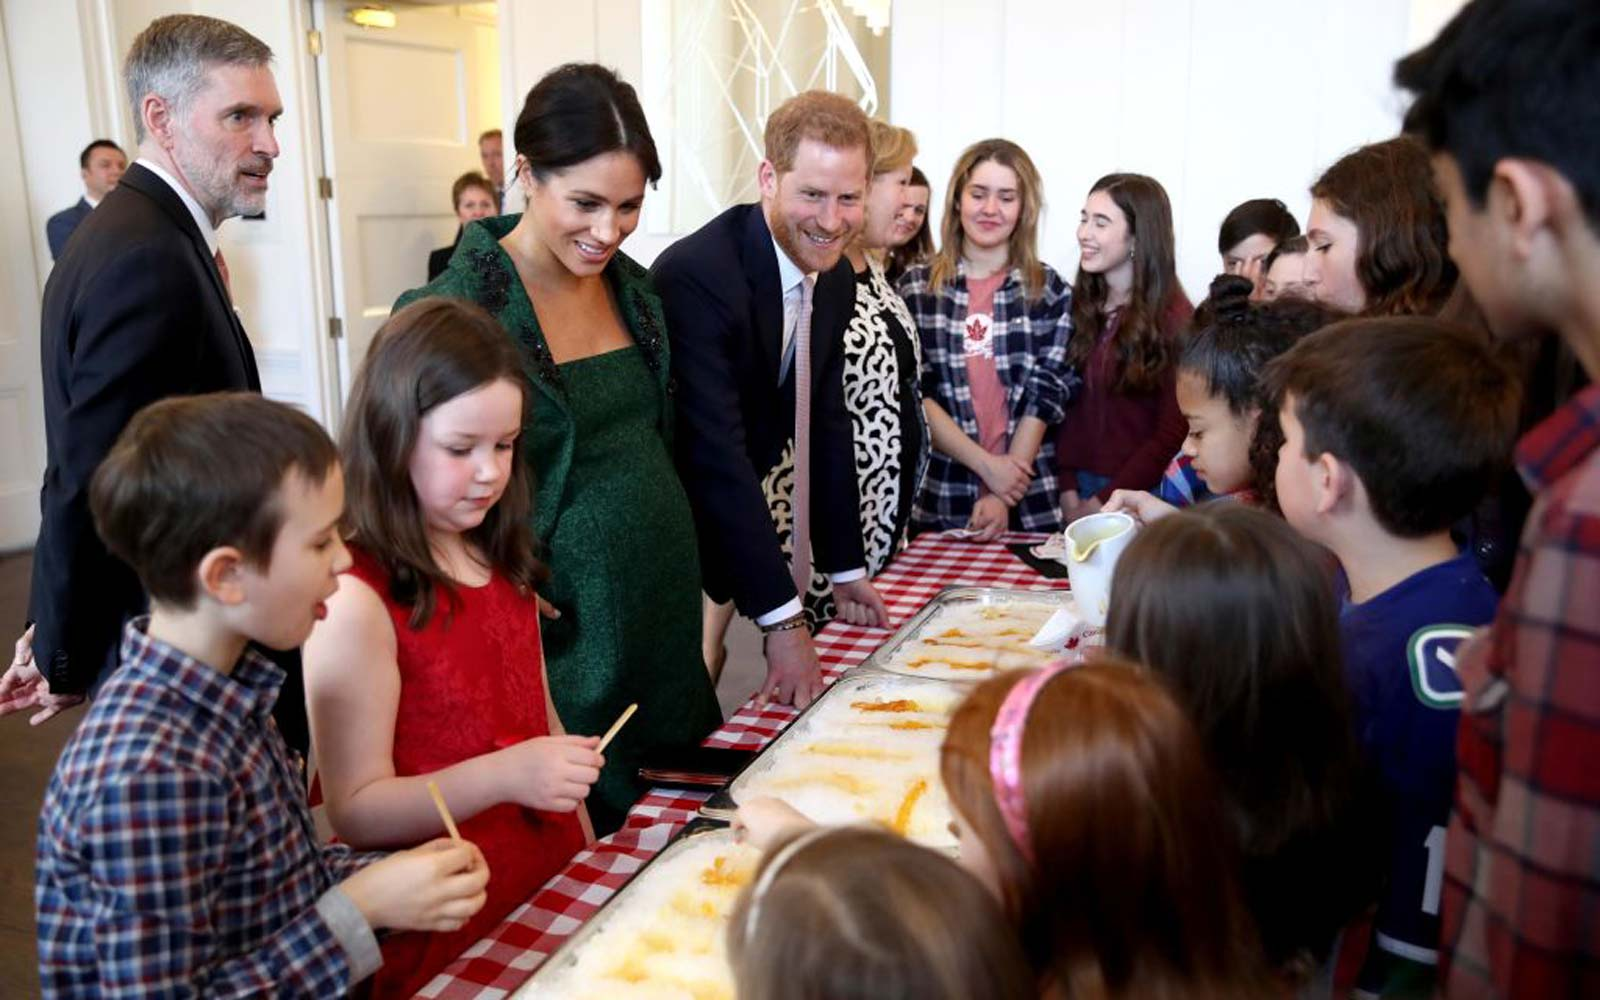 Meghan, Duchess of Sussex and Prince Harry, Duke of Sussex attend a Commonwealth Day Youth Event at Canada House, where they meet young people who demonstrate a Canadian spring tradition of making maple taffy